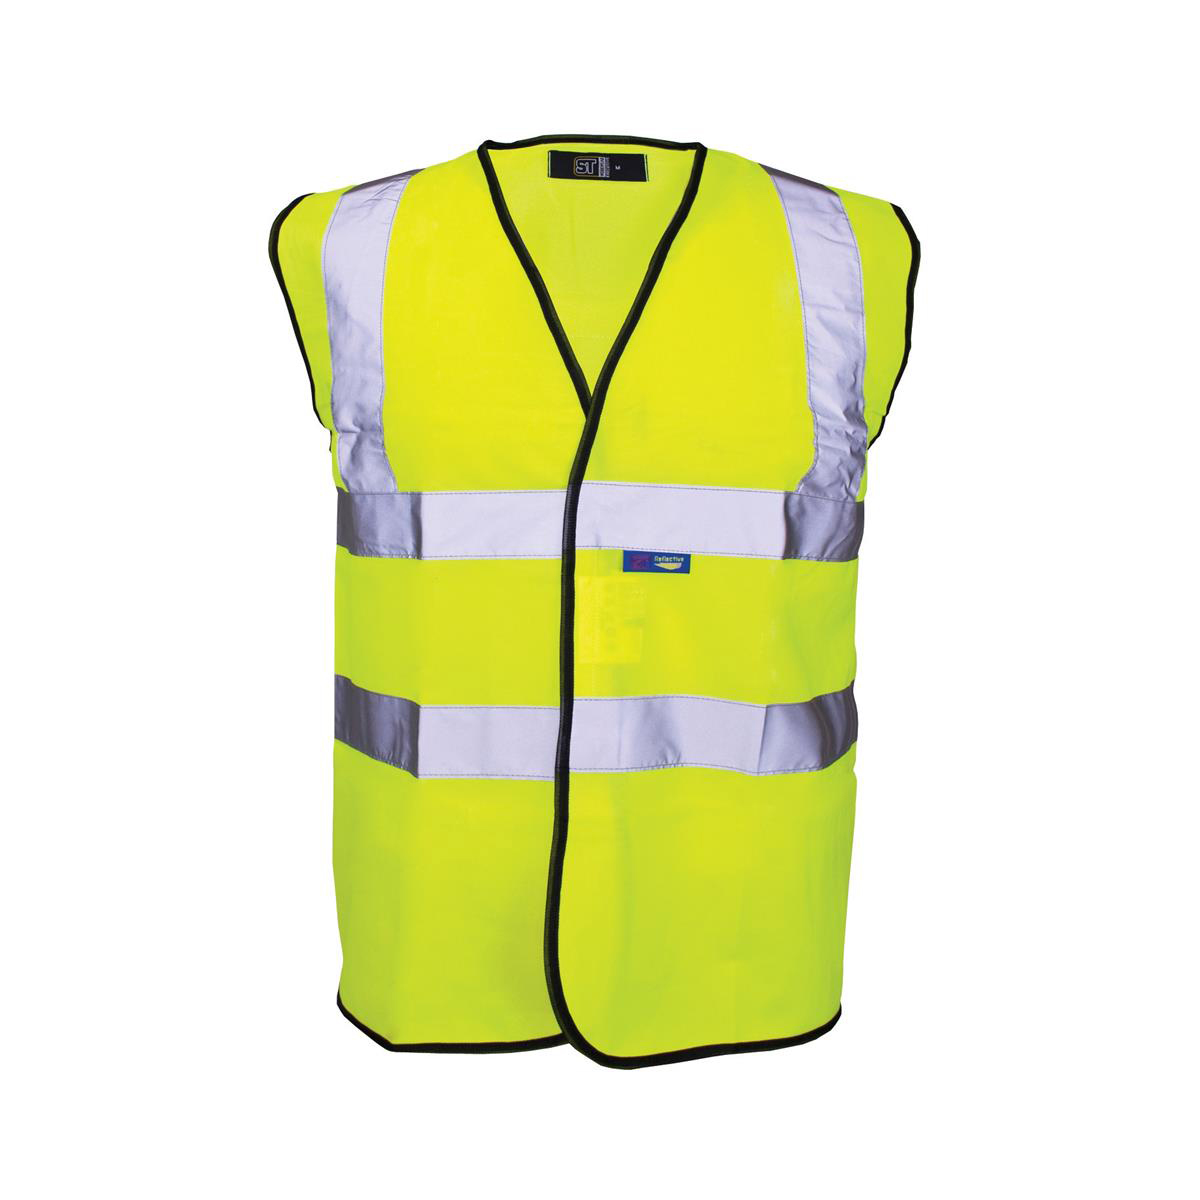 High Visibility Vest Polyester Yellow With Black Piping Large Approx 2/3 Day Lead Time